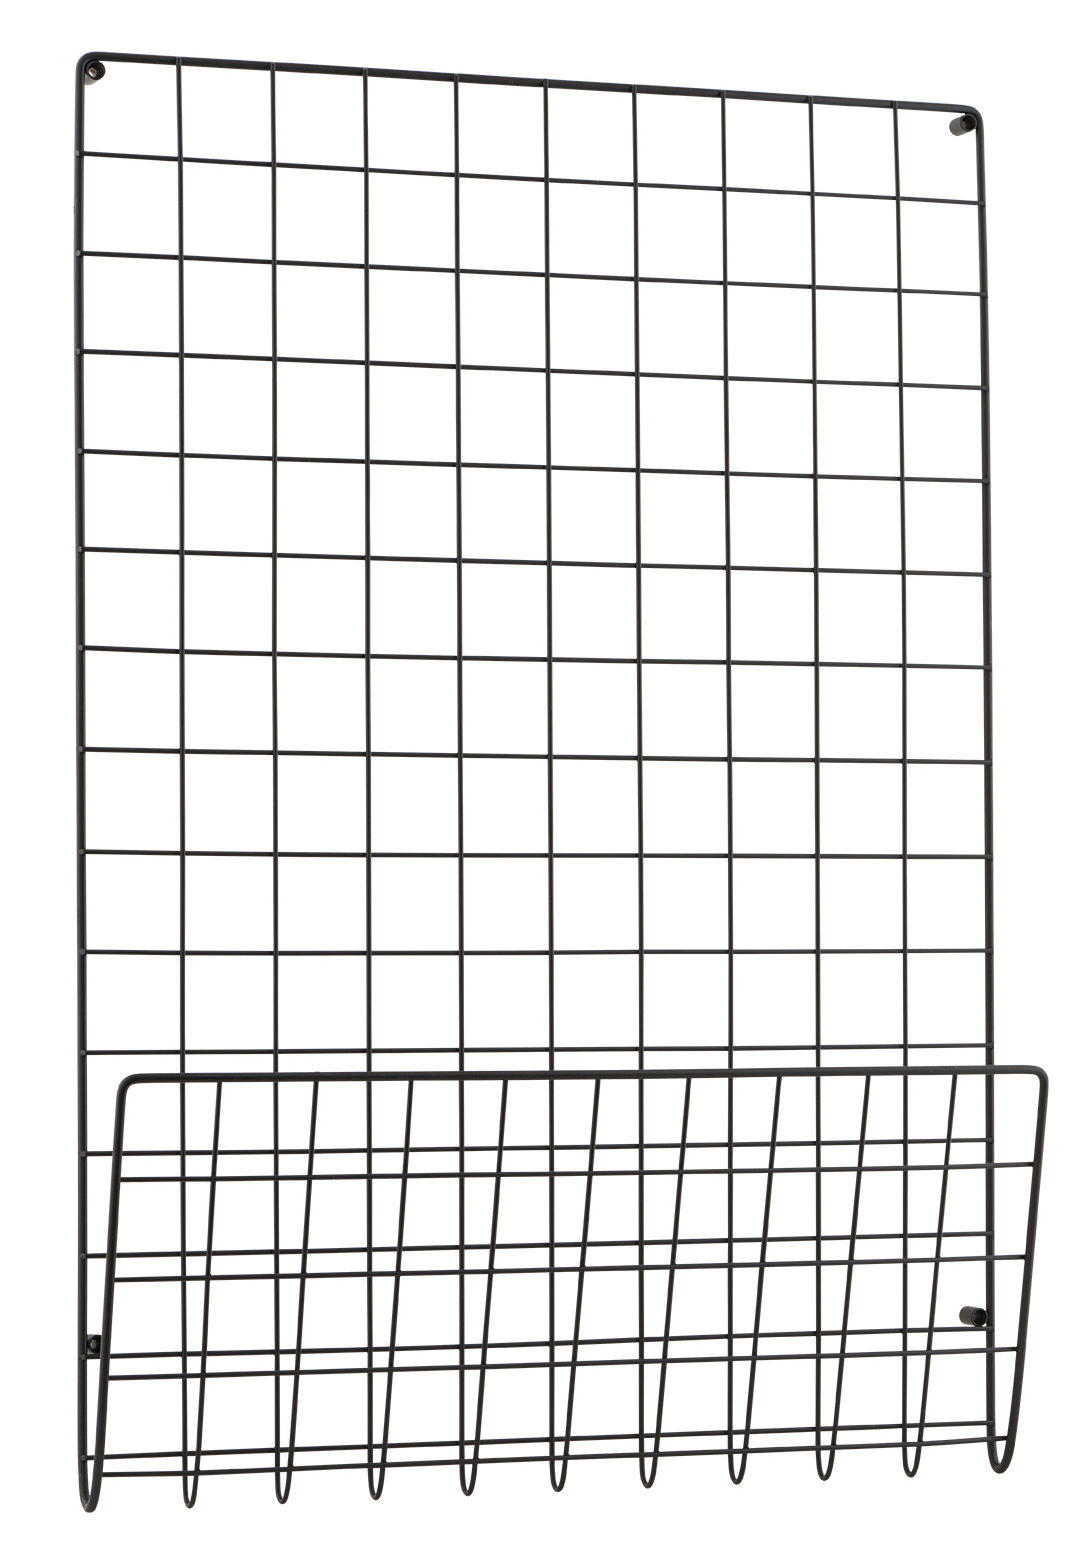 Decoration - Memo Boards & Calendars  - Mesh Wall storage - Magazine holder - 50 x 72 cm by House Doctor - Black - Steel